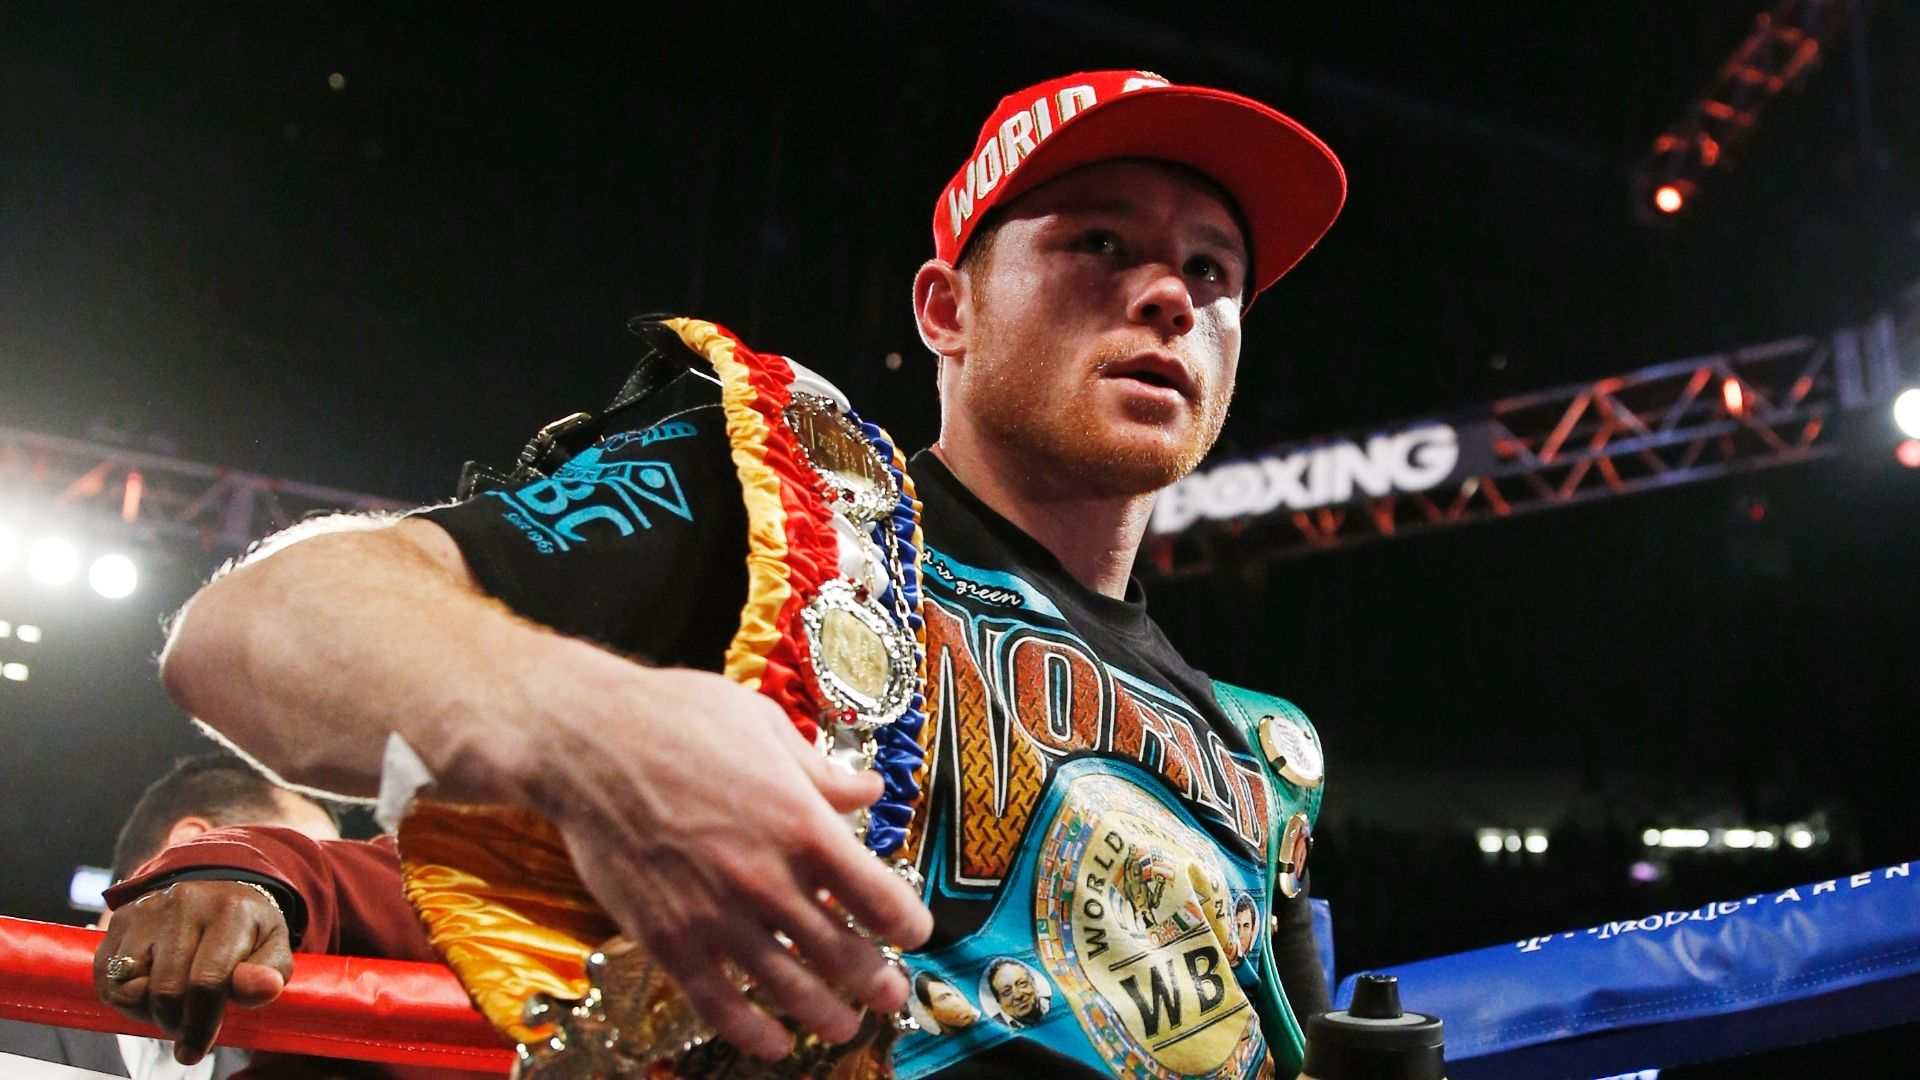 https://secure.espncdn.com/combiner/i?img=/media/motion/2016/0519/dm_160519_Canelo_GGG_fight_First_Take/dm_160519_Canelo_GGG_fight_First_Take.jpg